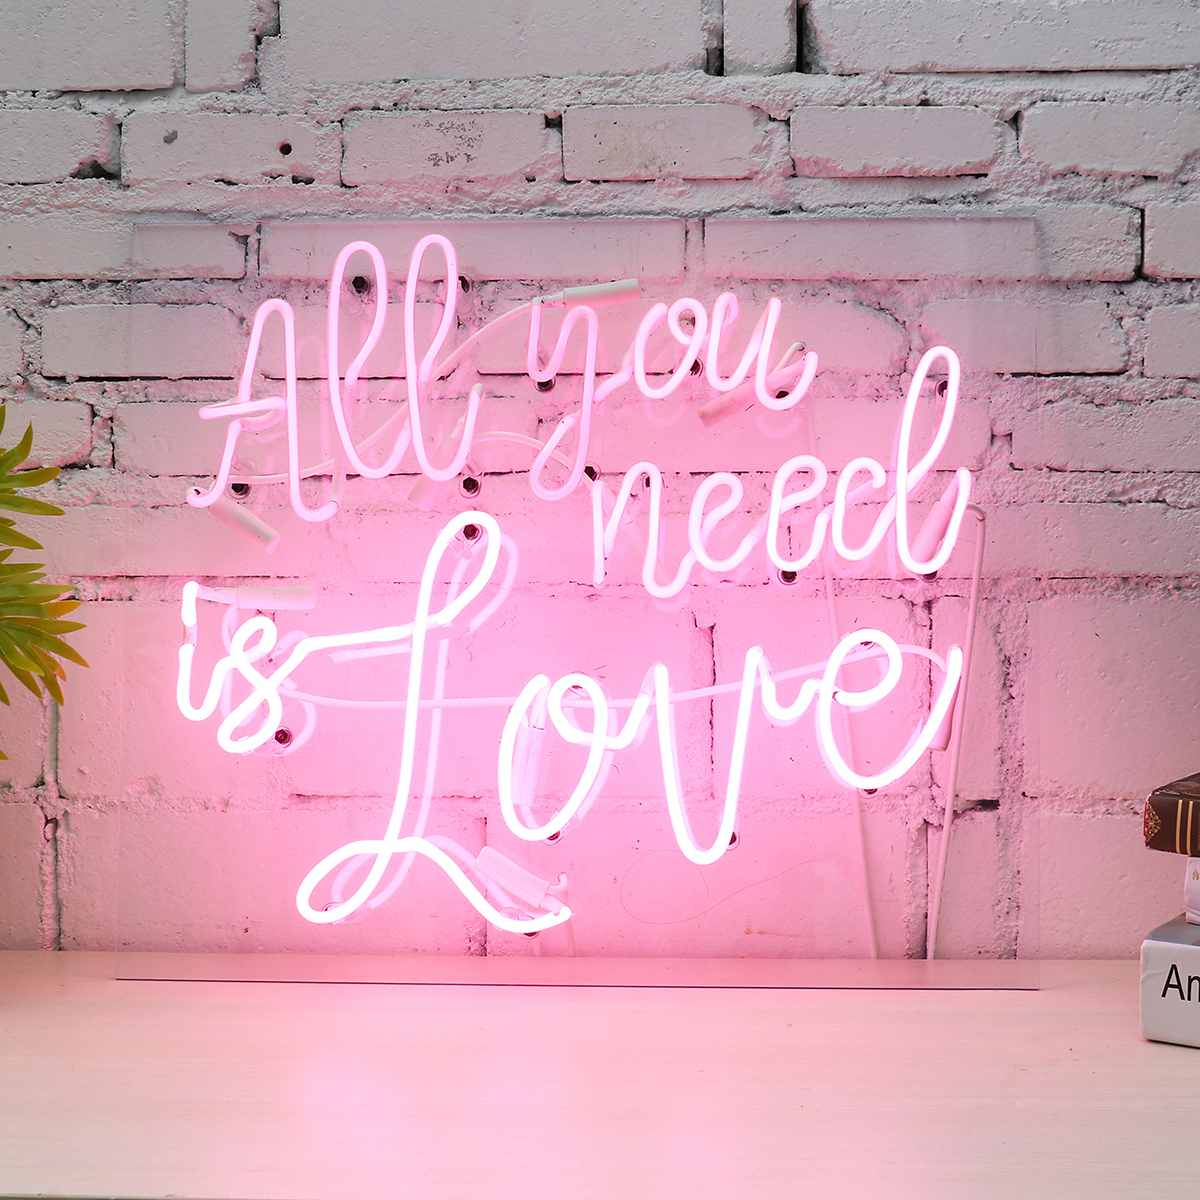 All You Need Is Love Neon Sign LED Visual Artwork Bar Club Wall Light Lamp Valentine's Party Wedding Decoration Holiday Lighting